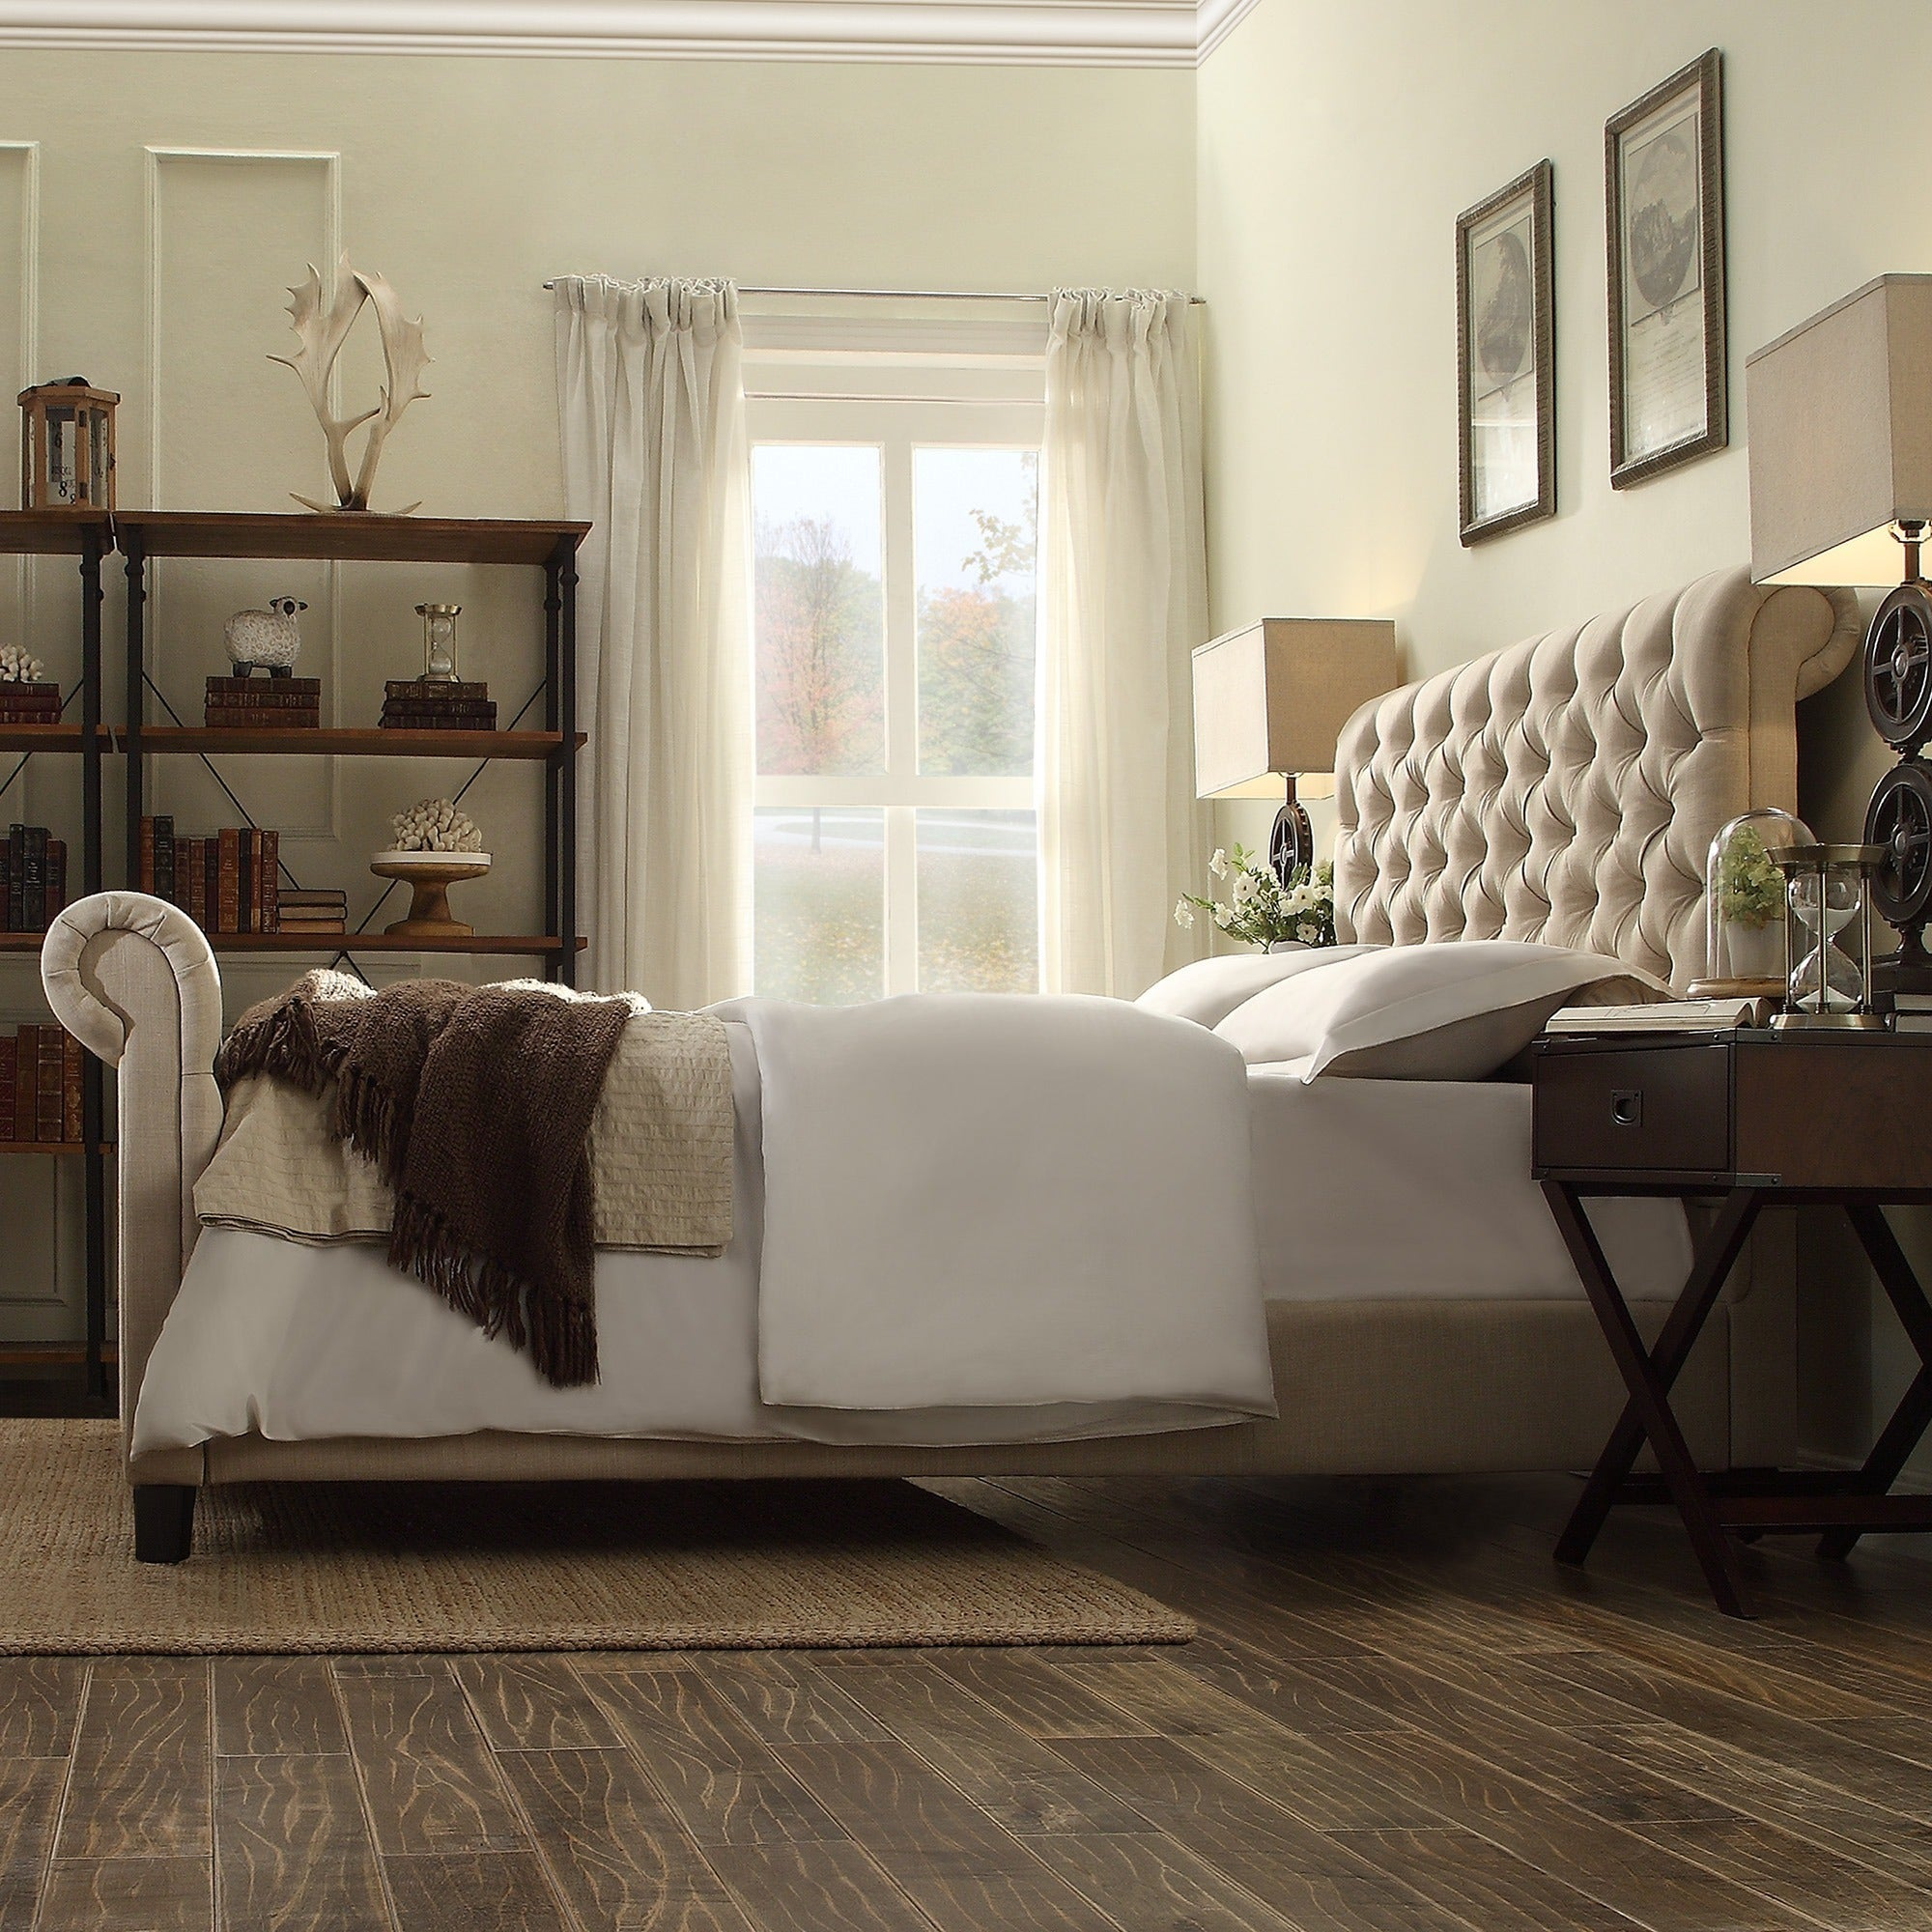 Knightsbridge Beige Linen Rolled Top Tufted Chesterfield Bed with Footboard  by iNSPIRE Q Artisan - Free Shipping Today - Overstock.com - 16991499